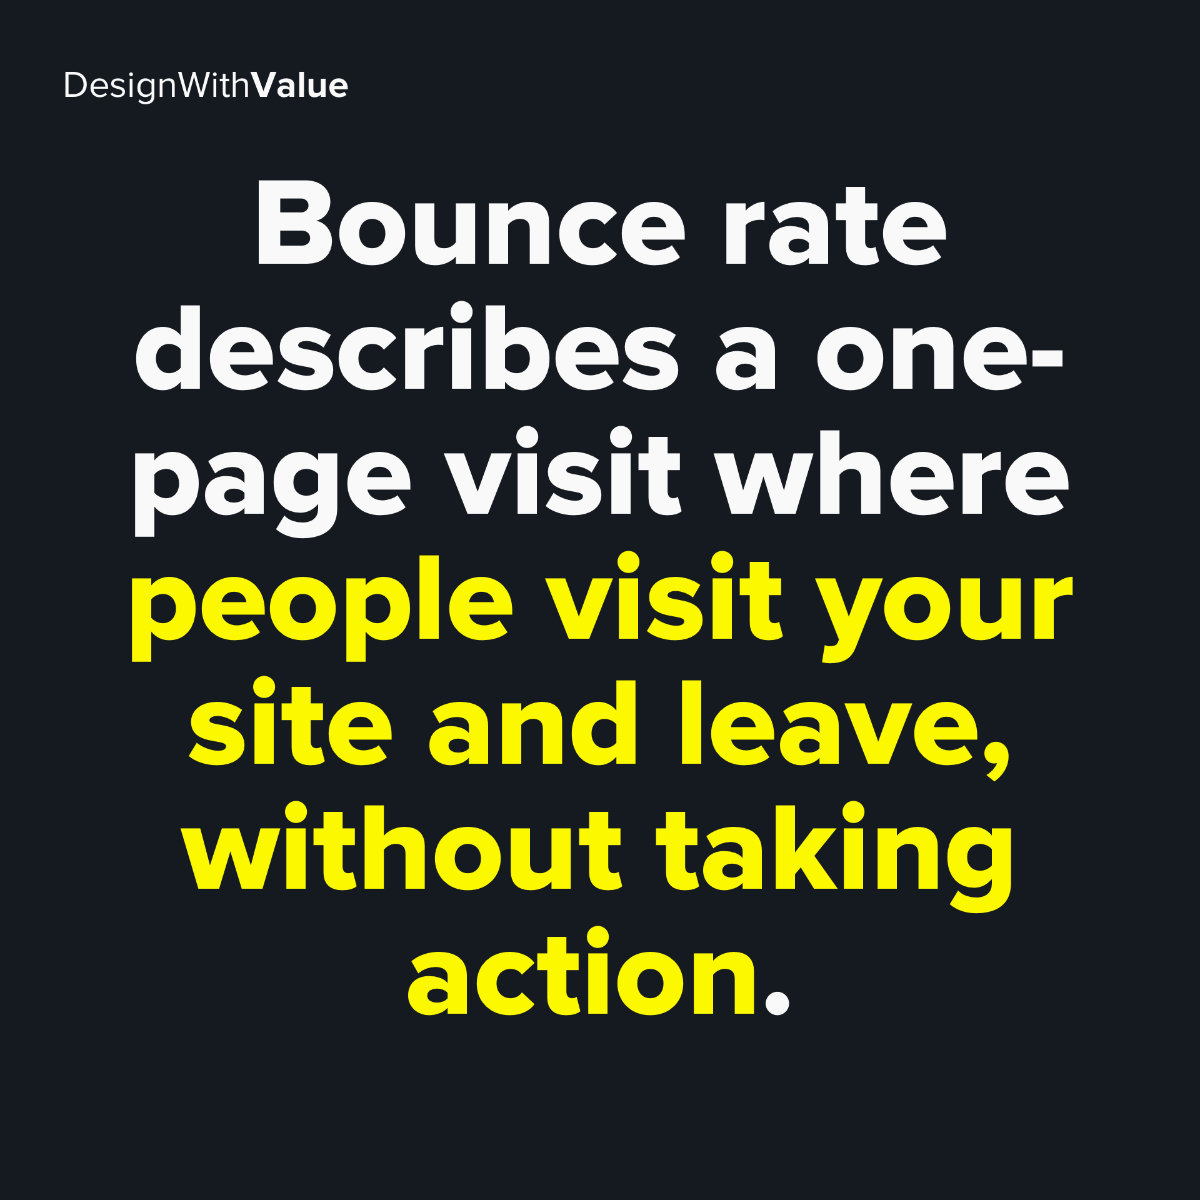 Bounce rate describes a one page visit where people visit your site and leave, without taking action